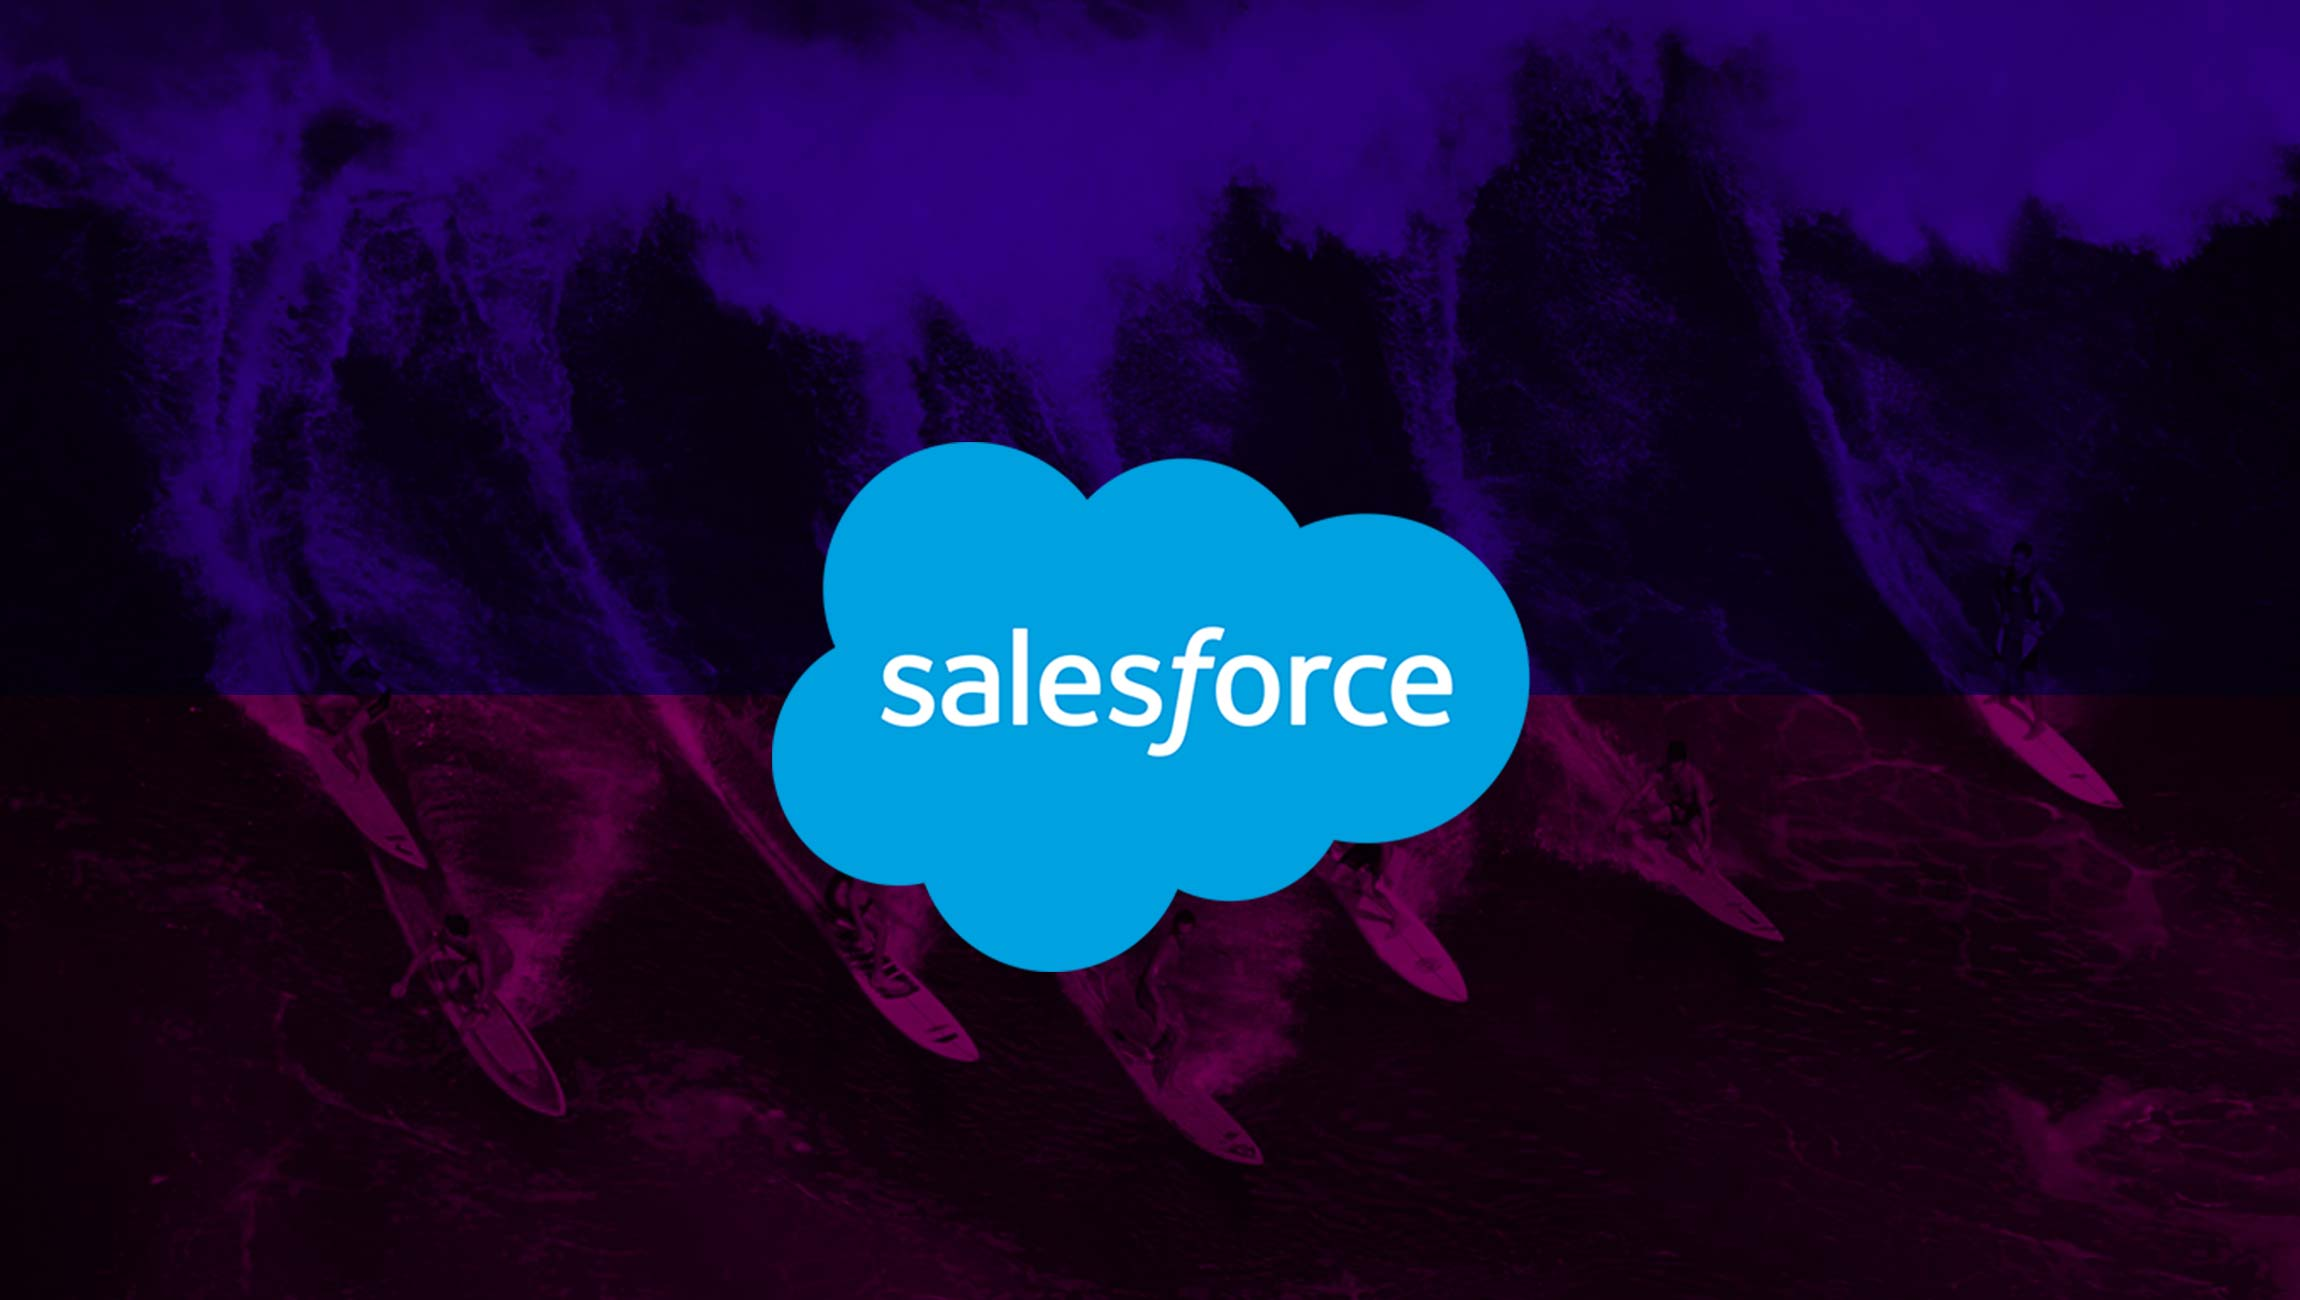 Introducing Salesforce Anywhere: Technology Enabling the All-Digital, Work-From-Anywhere World - MarTech Series - RapidAPI